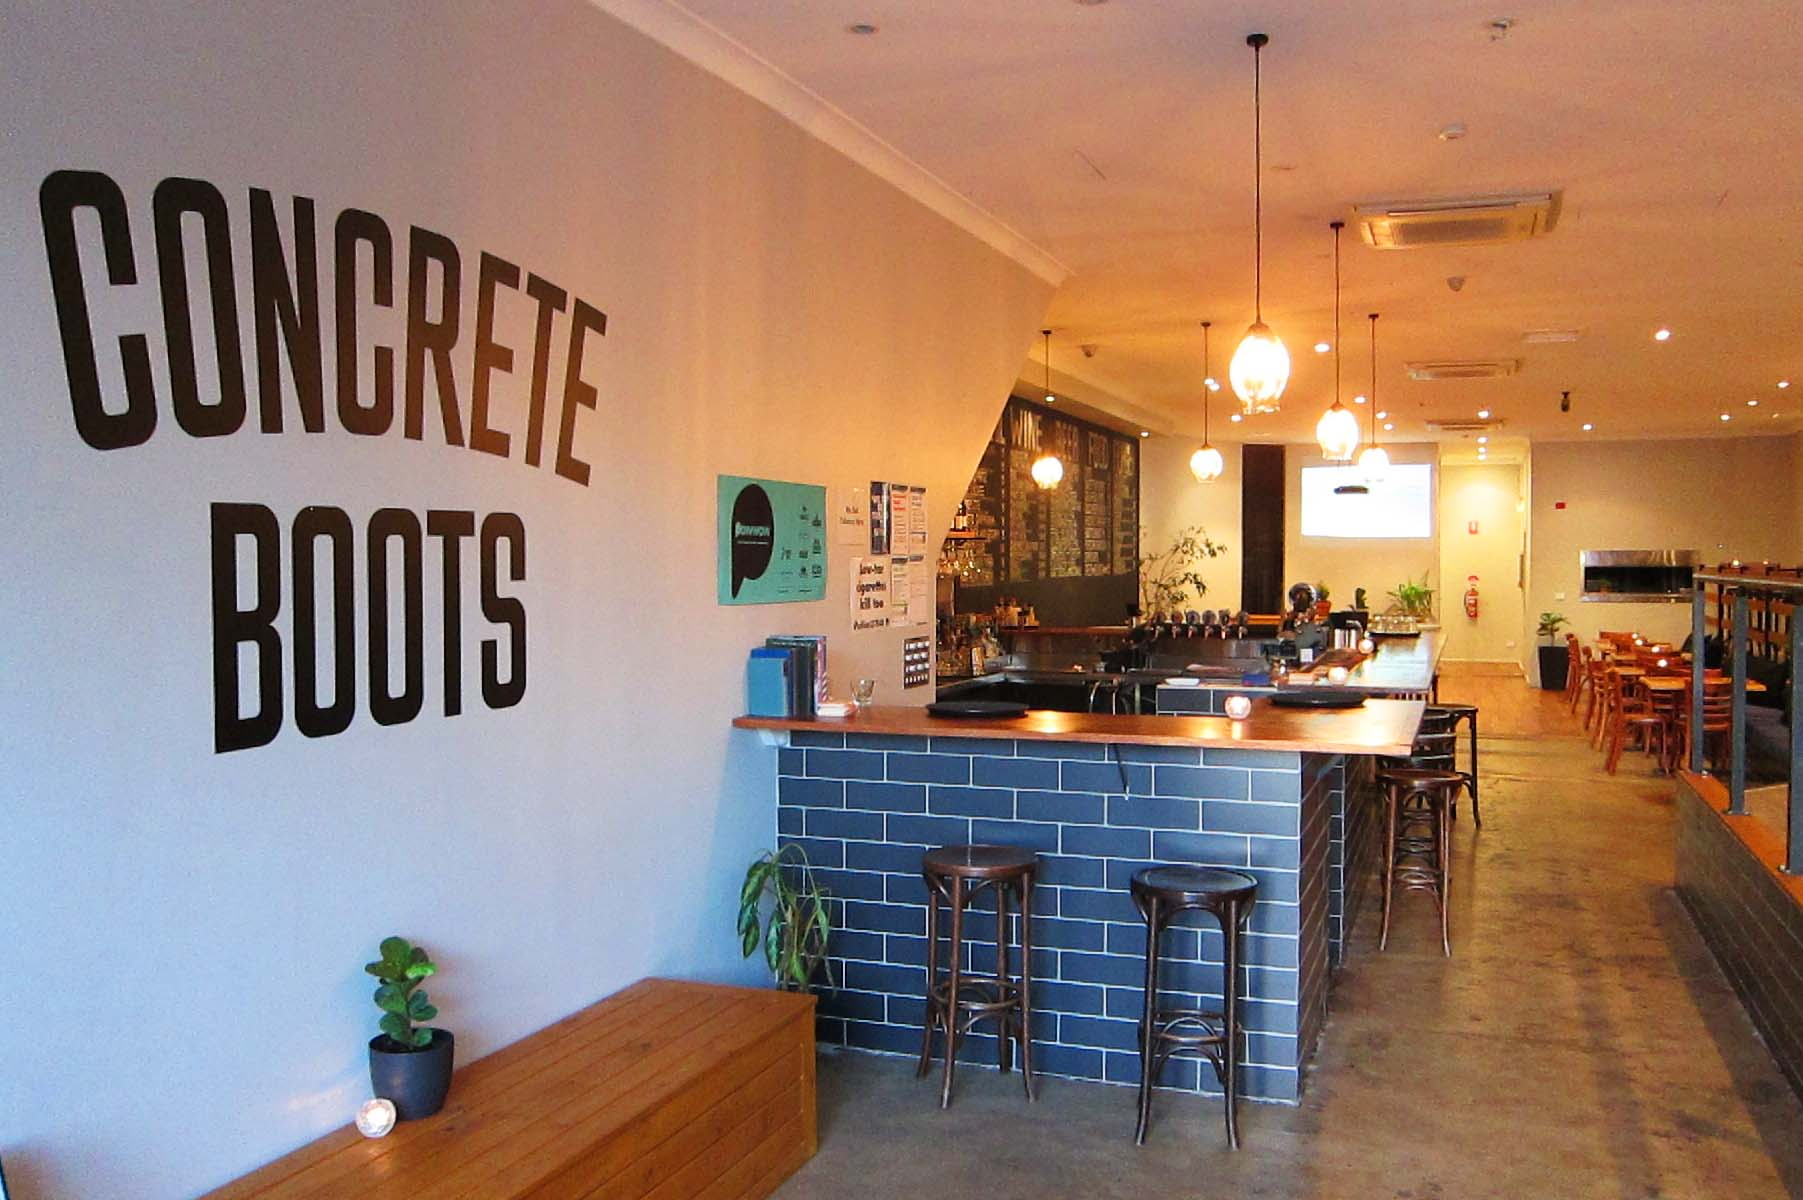 Concrete Boots Bar – Best New Bars